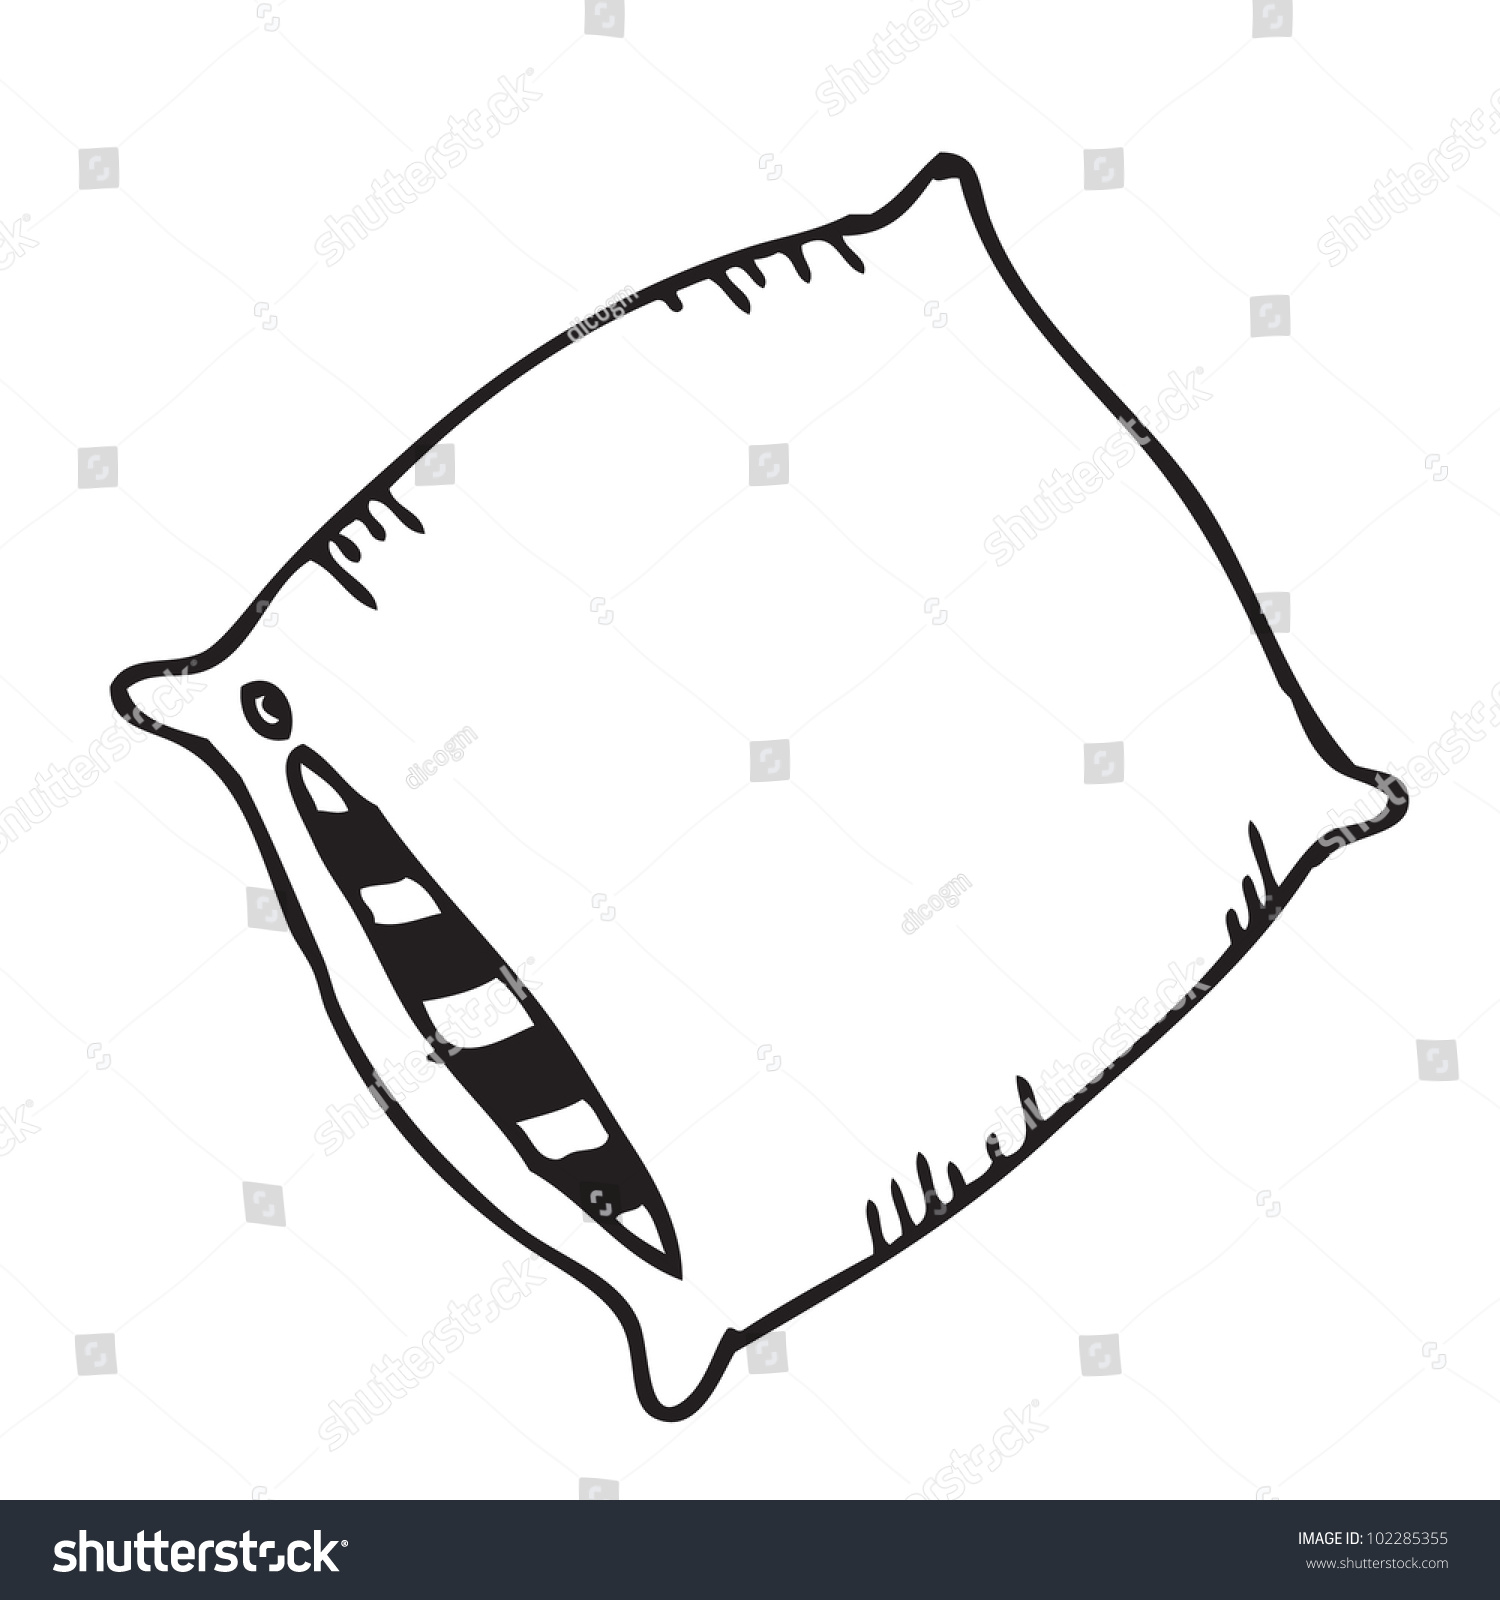 Pillow Cartoon Doodle Stock Photo (Photo, Vector, Illustration ... for Pillow Cartoon Black And White  557ylc